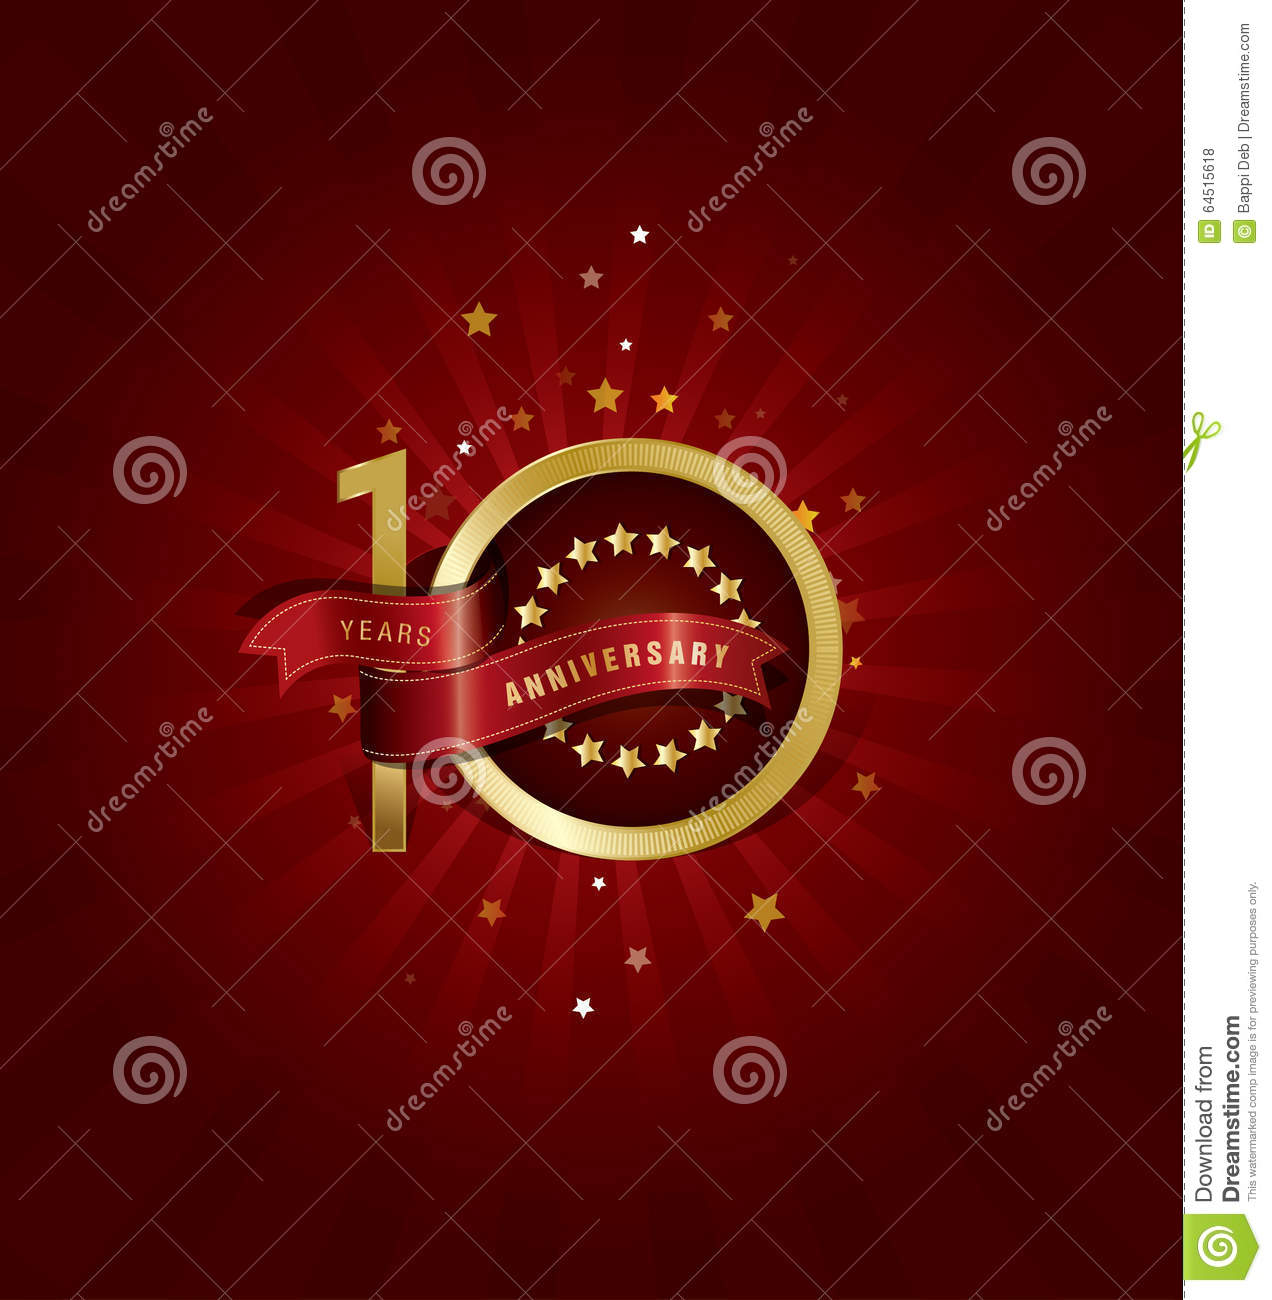 10 years anniversary template design with red abstract